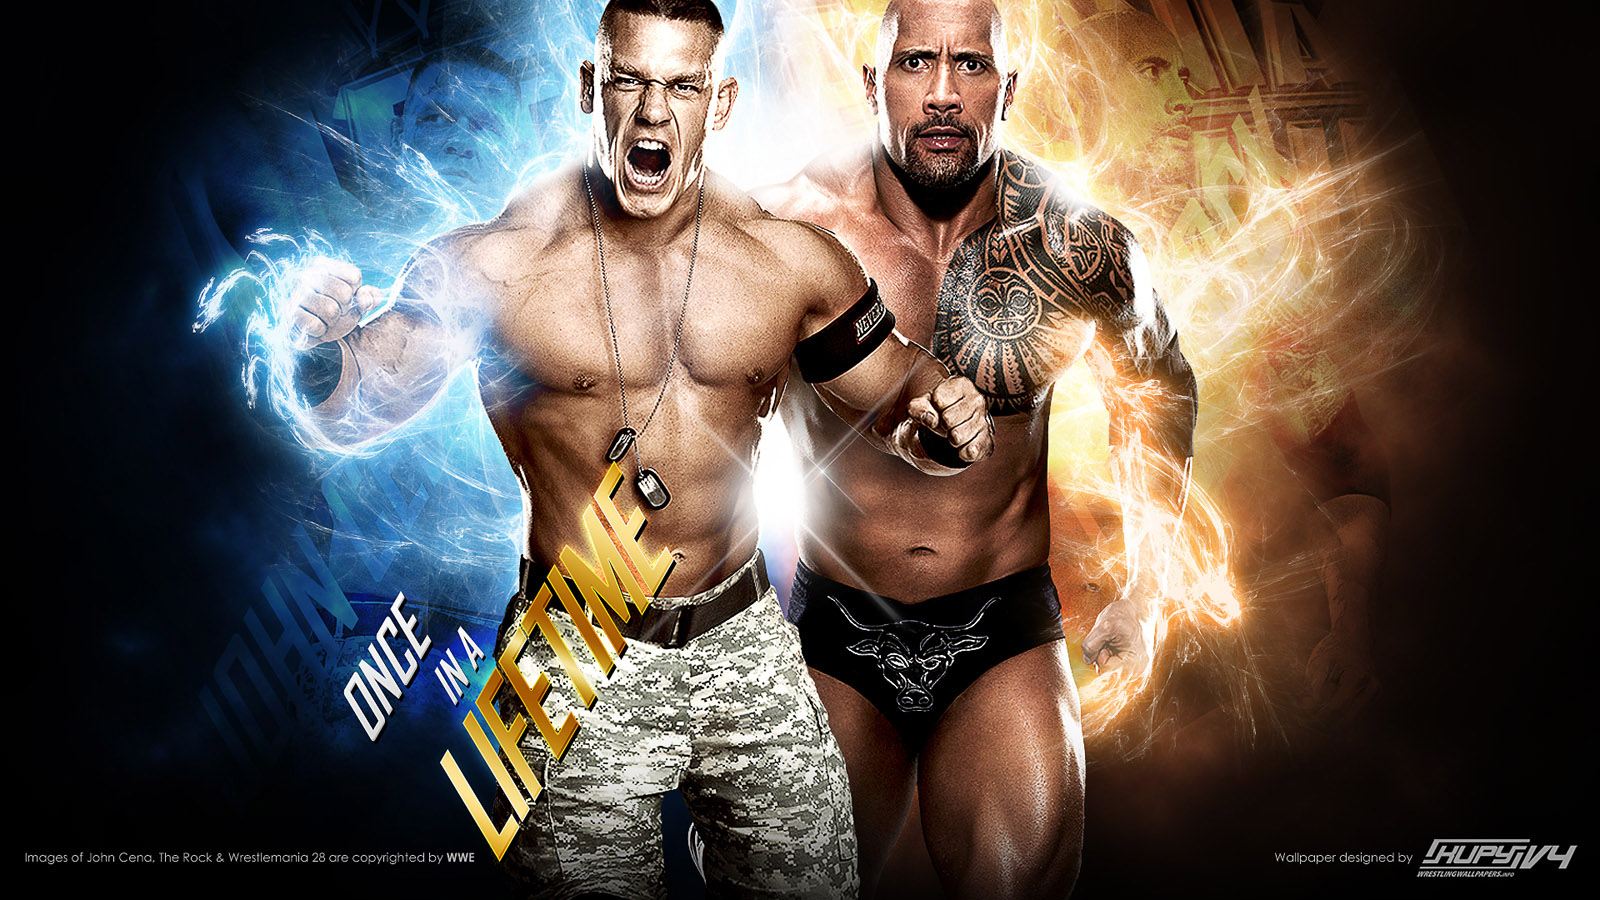 wwe wallpaper download for mobile